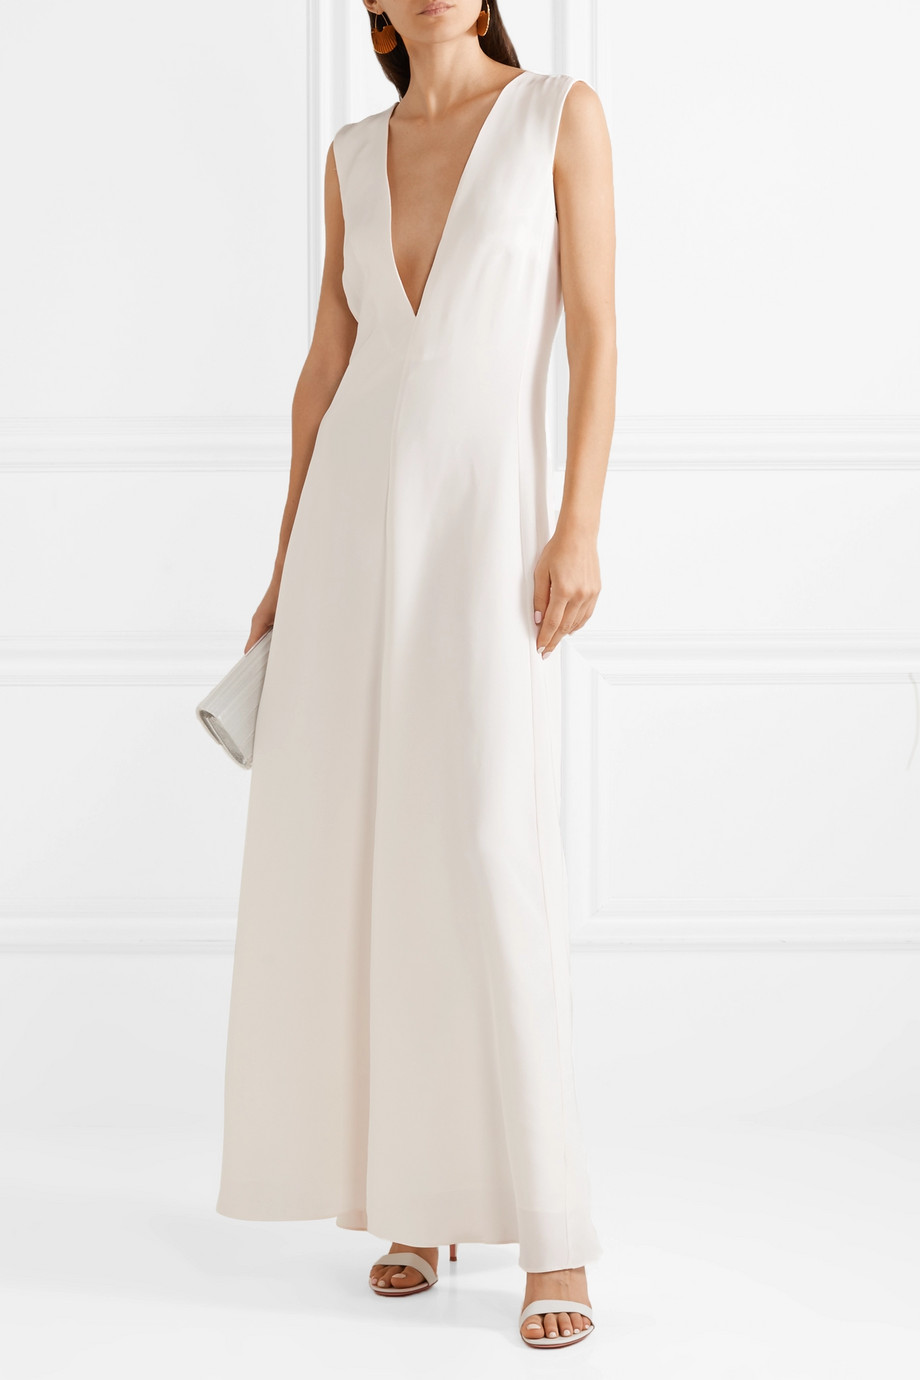 Michael Lo Sordo Silk-satin maxi dress